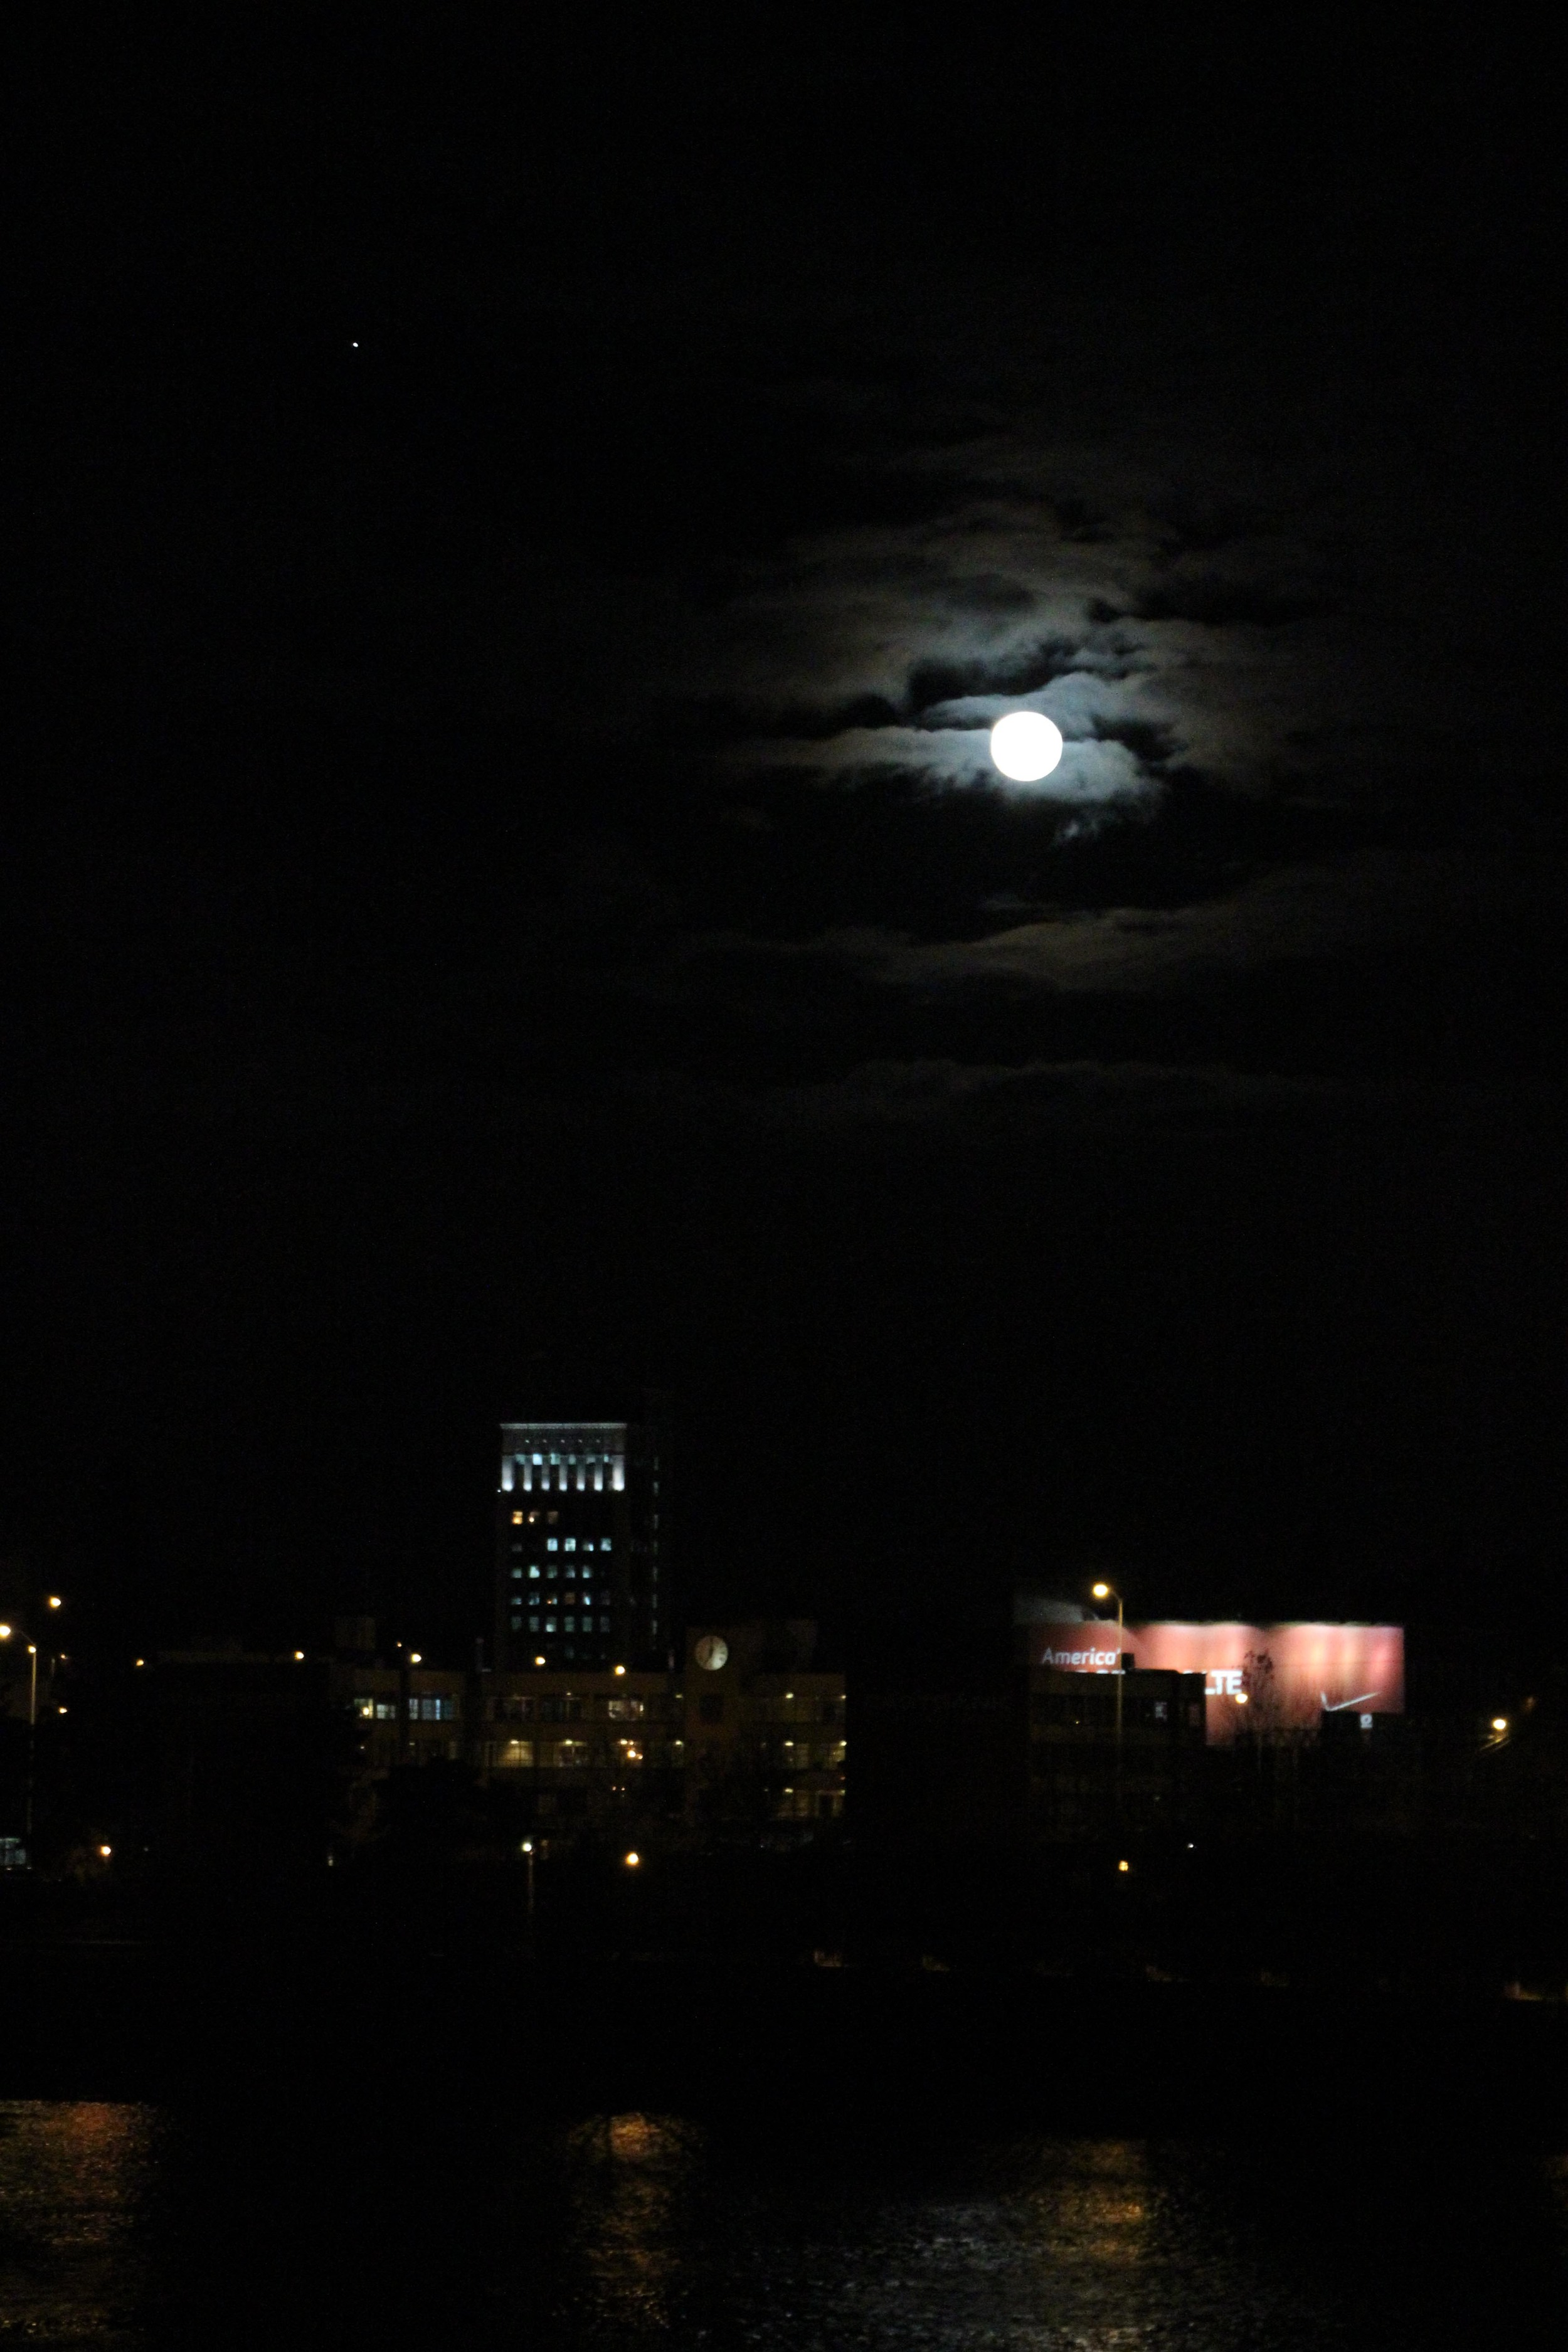 One of my first night shots. I like the way the moon illuminates the clouds, and the feel of the night skyline.